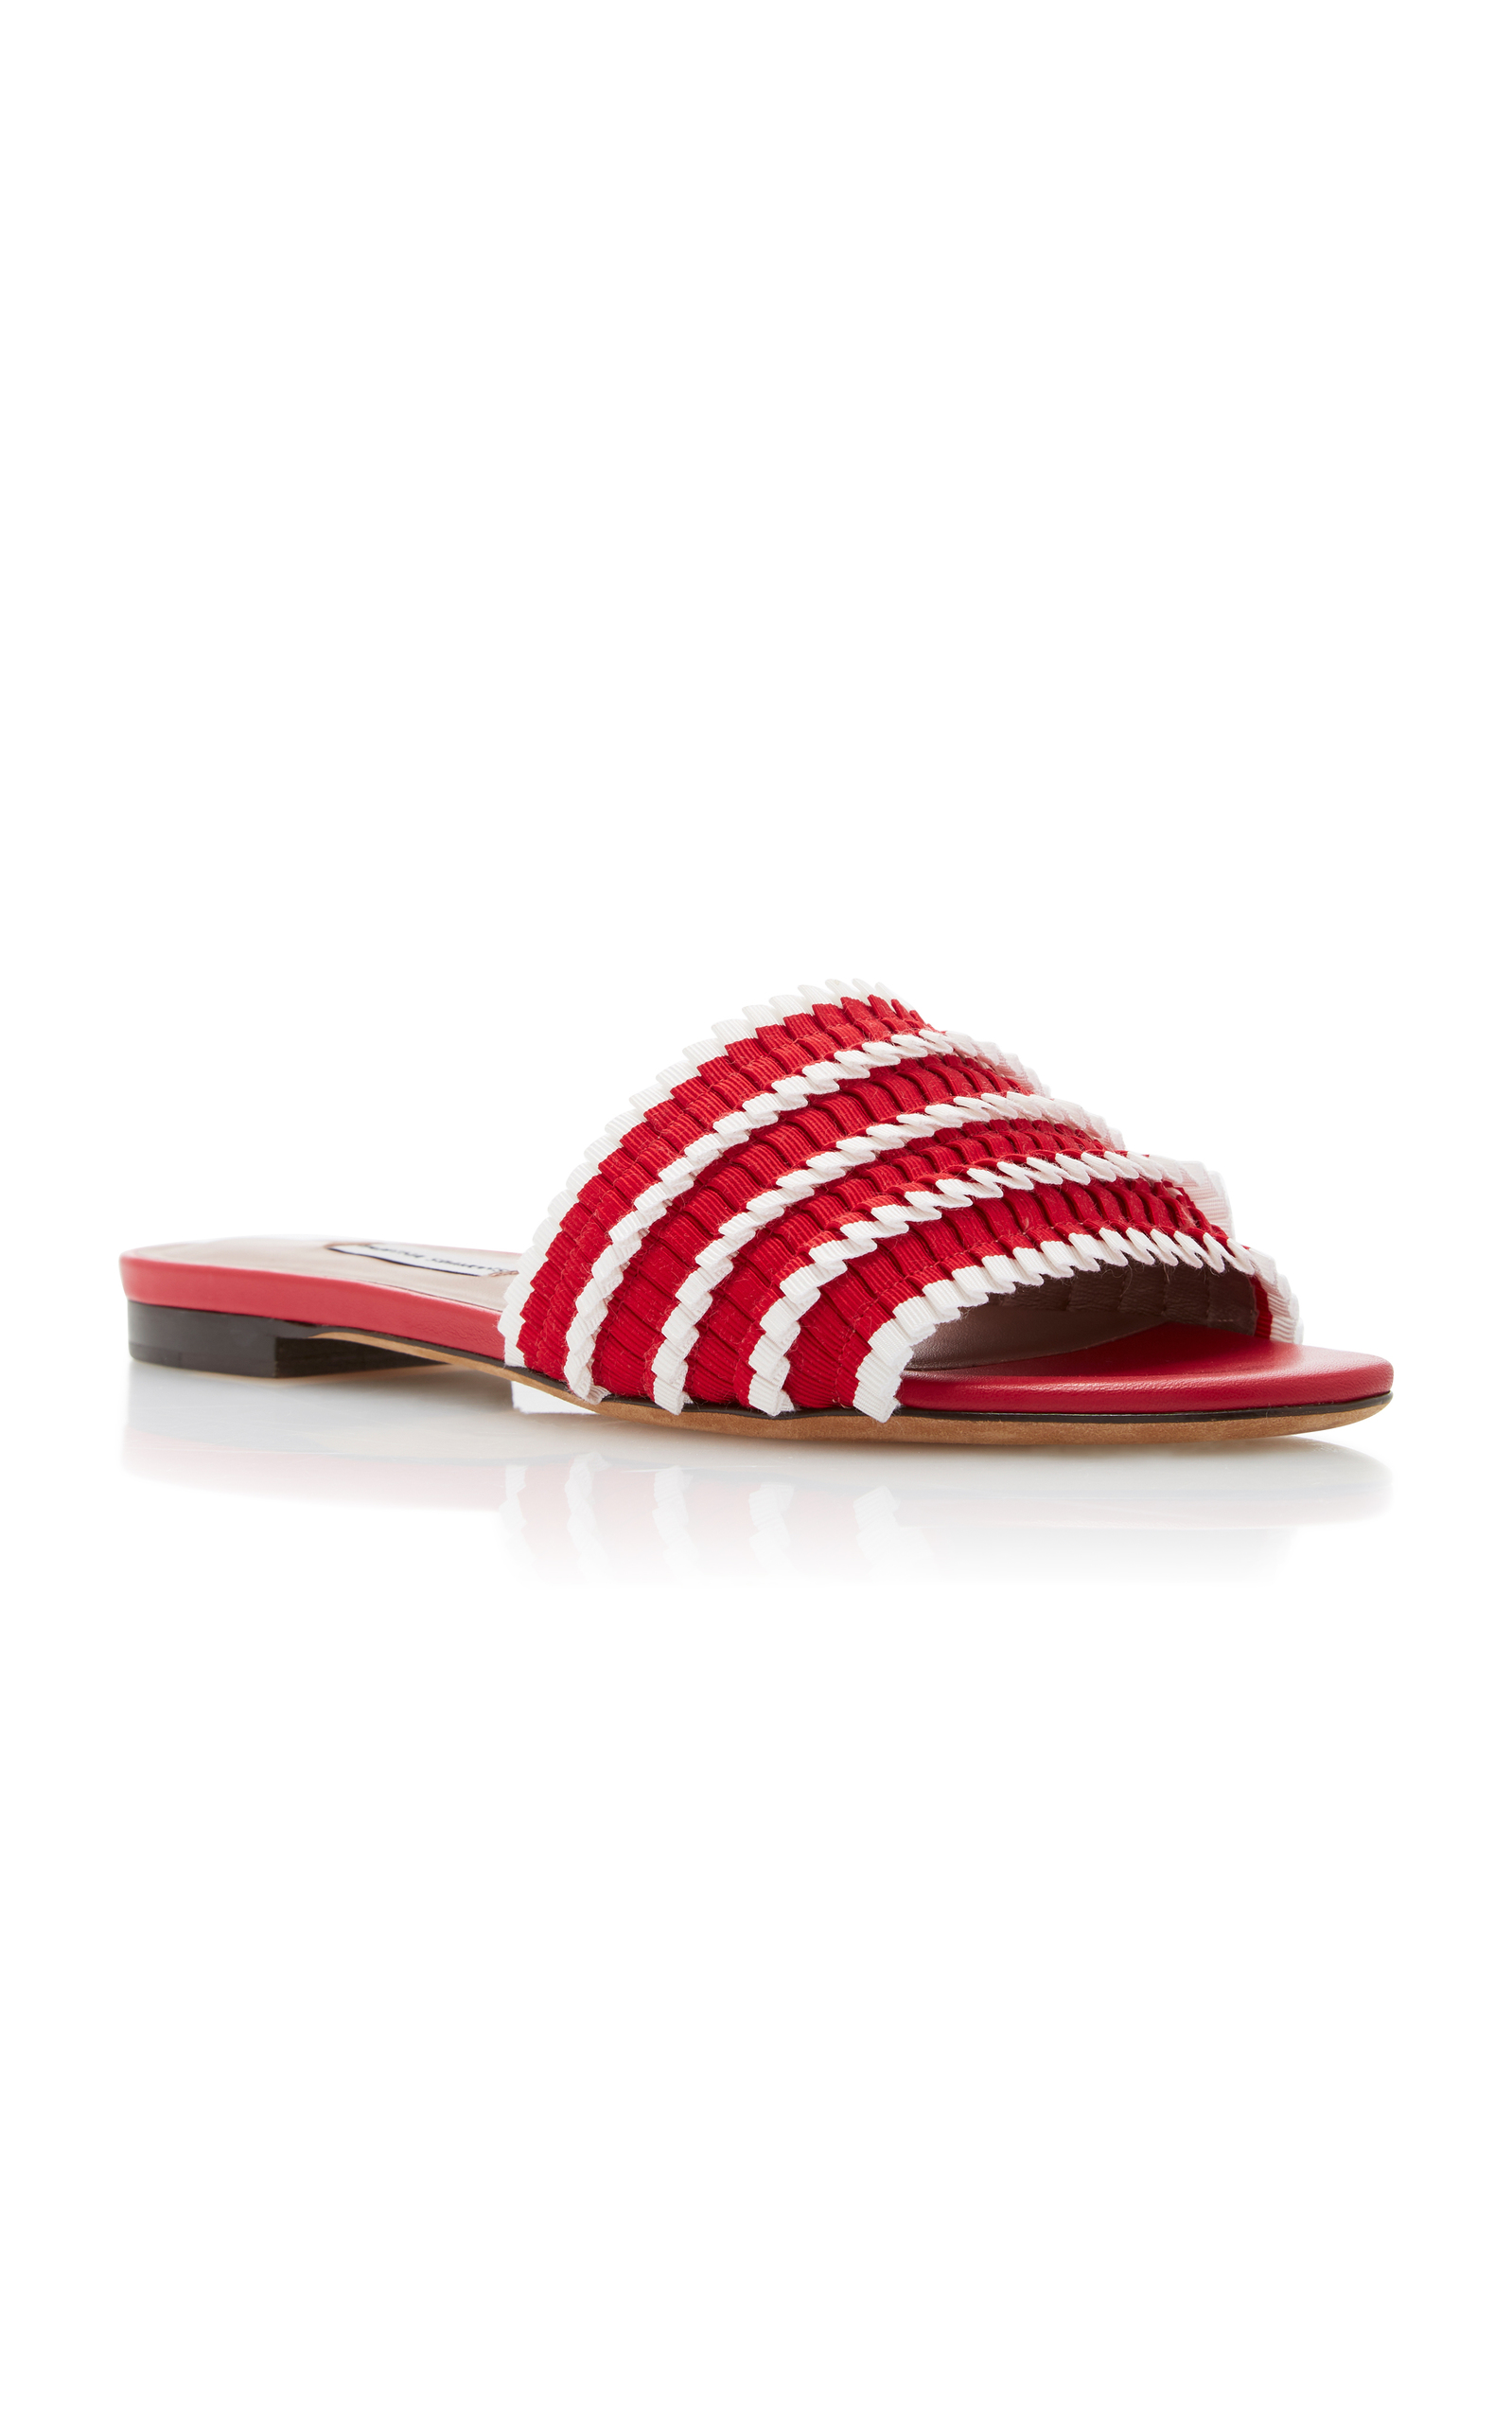 Tabitha Simmons Sprinkles Pleated Slides R8SVDTtI